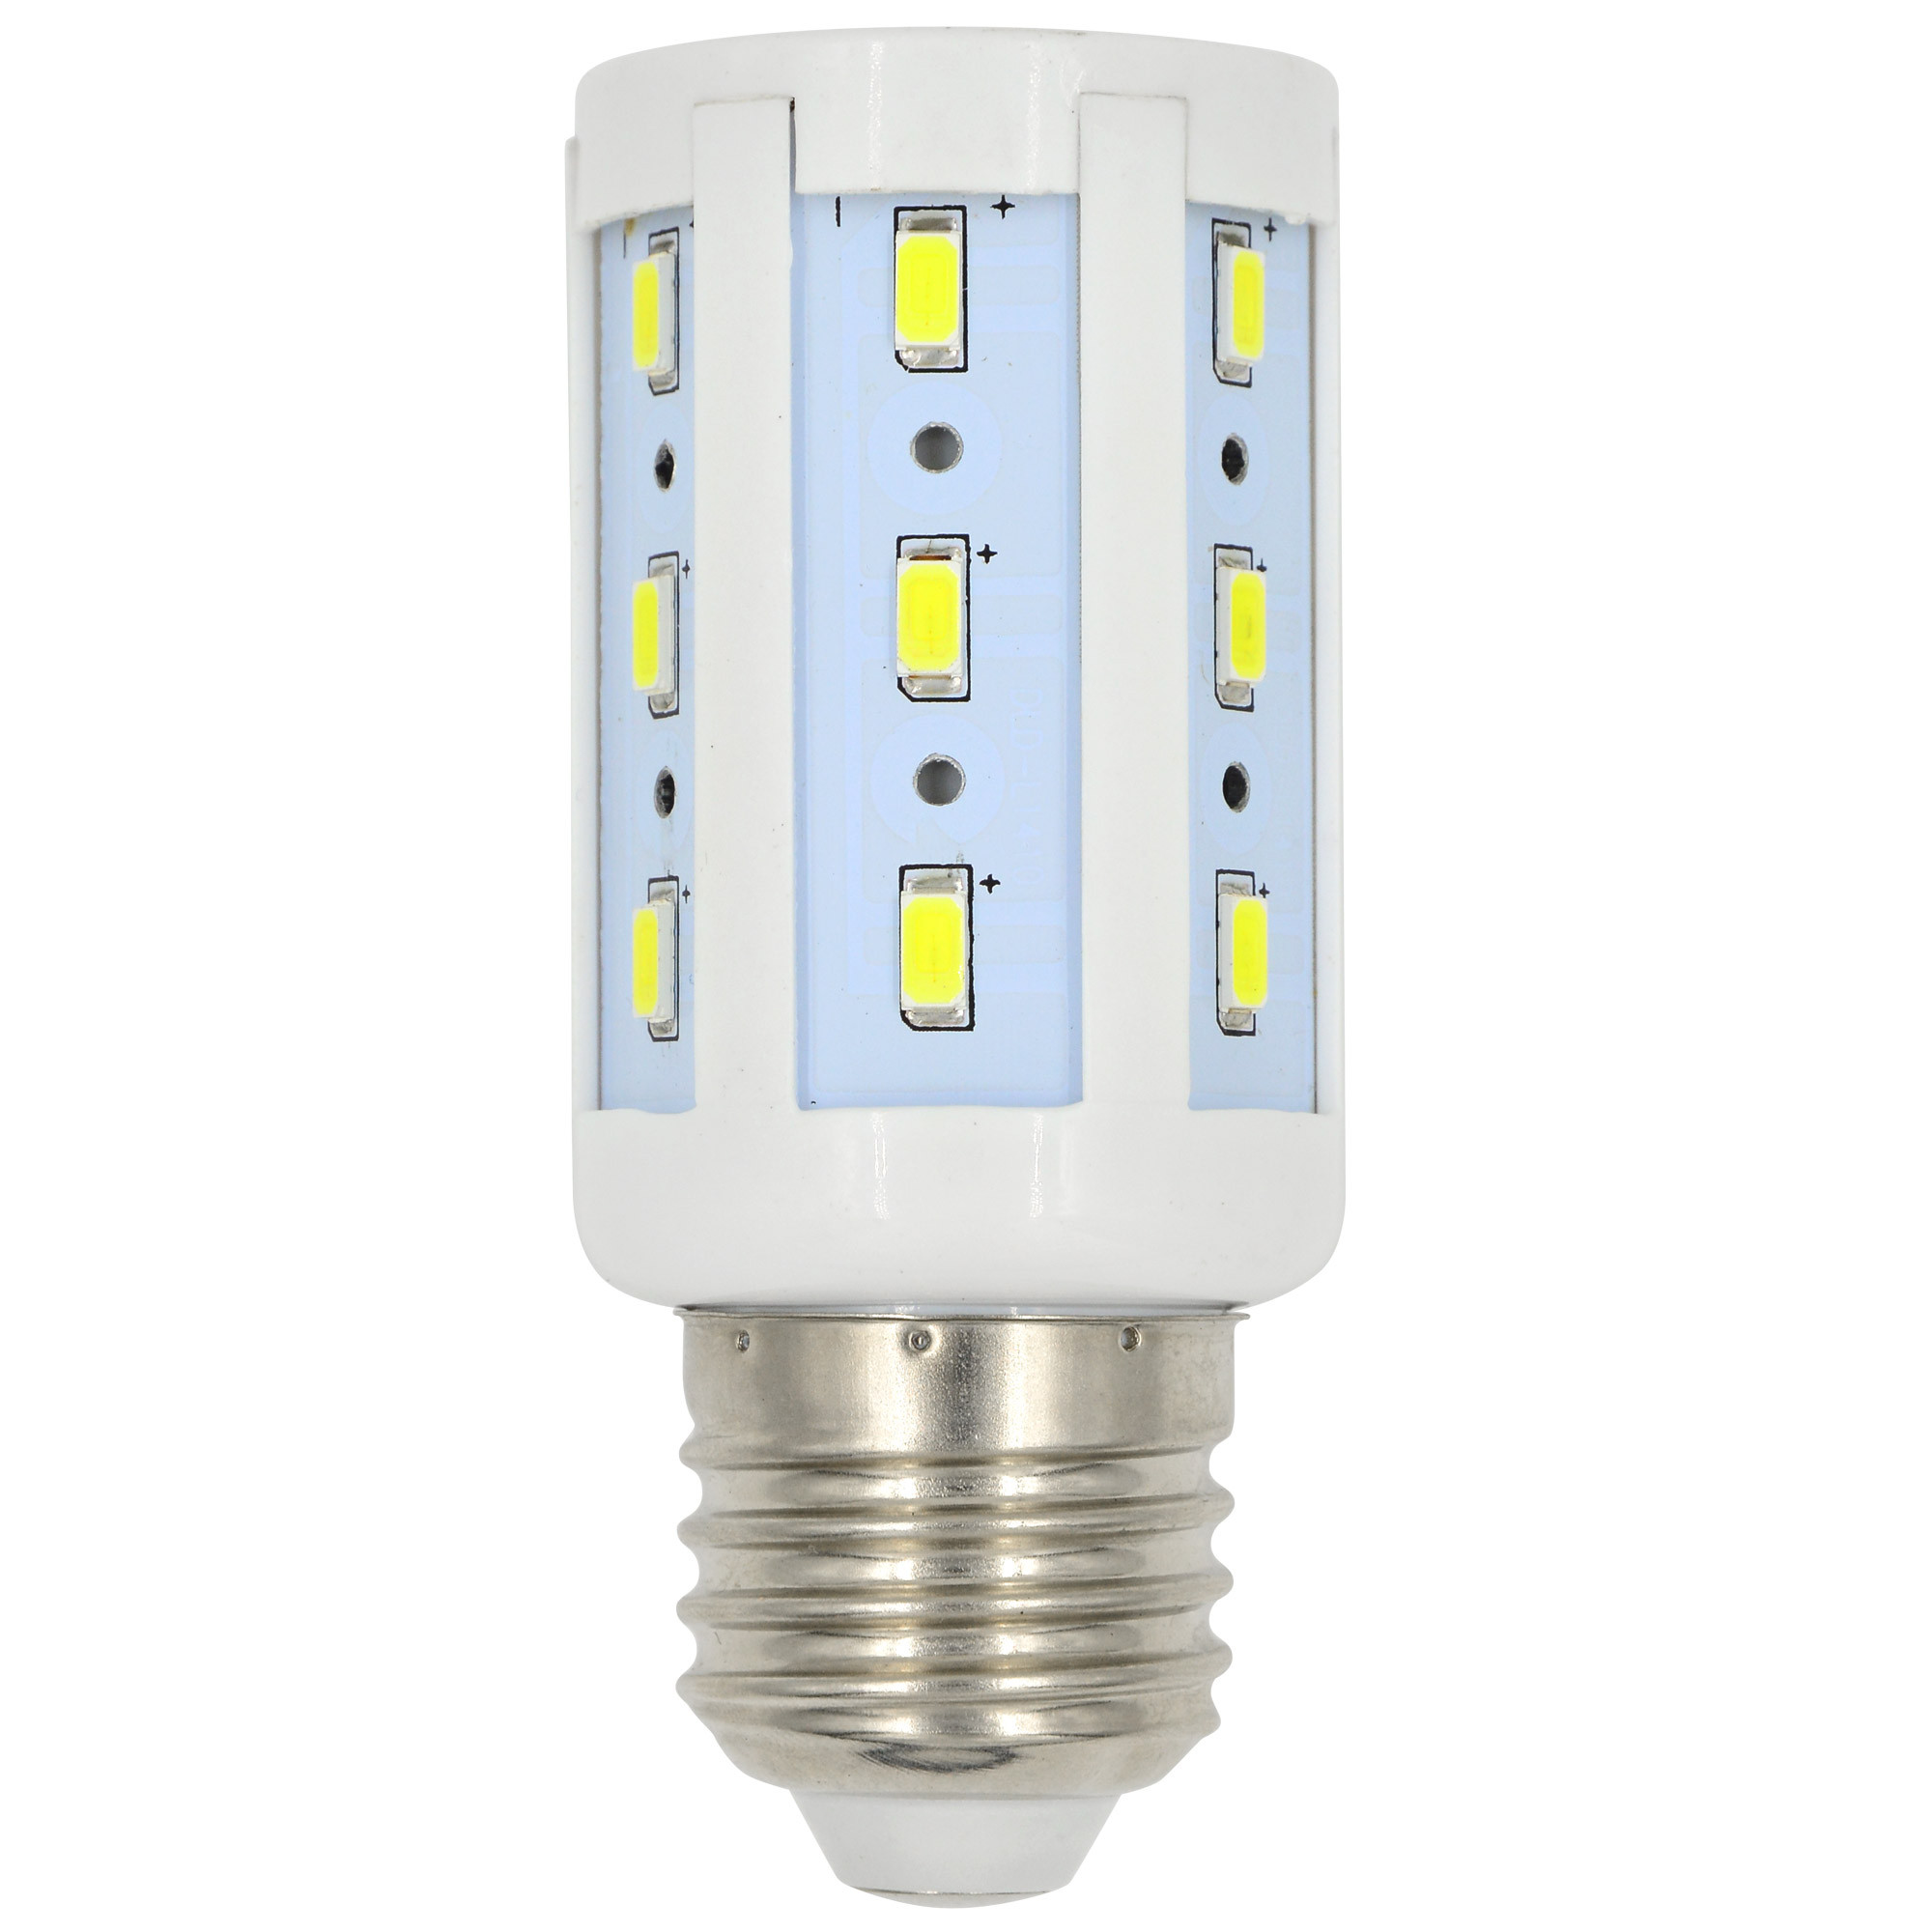 MENGS® E27 5W LED Corn Light 24x 5730 SMD LEDs LED Bulb in Cool White Energy-Saving Lamp